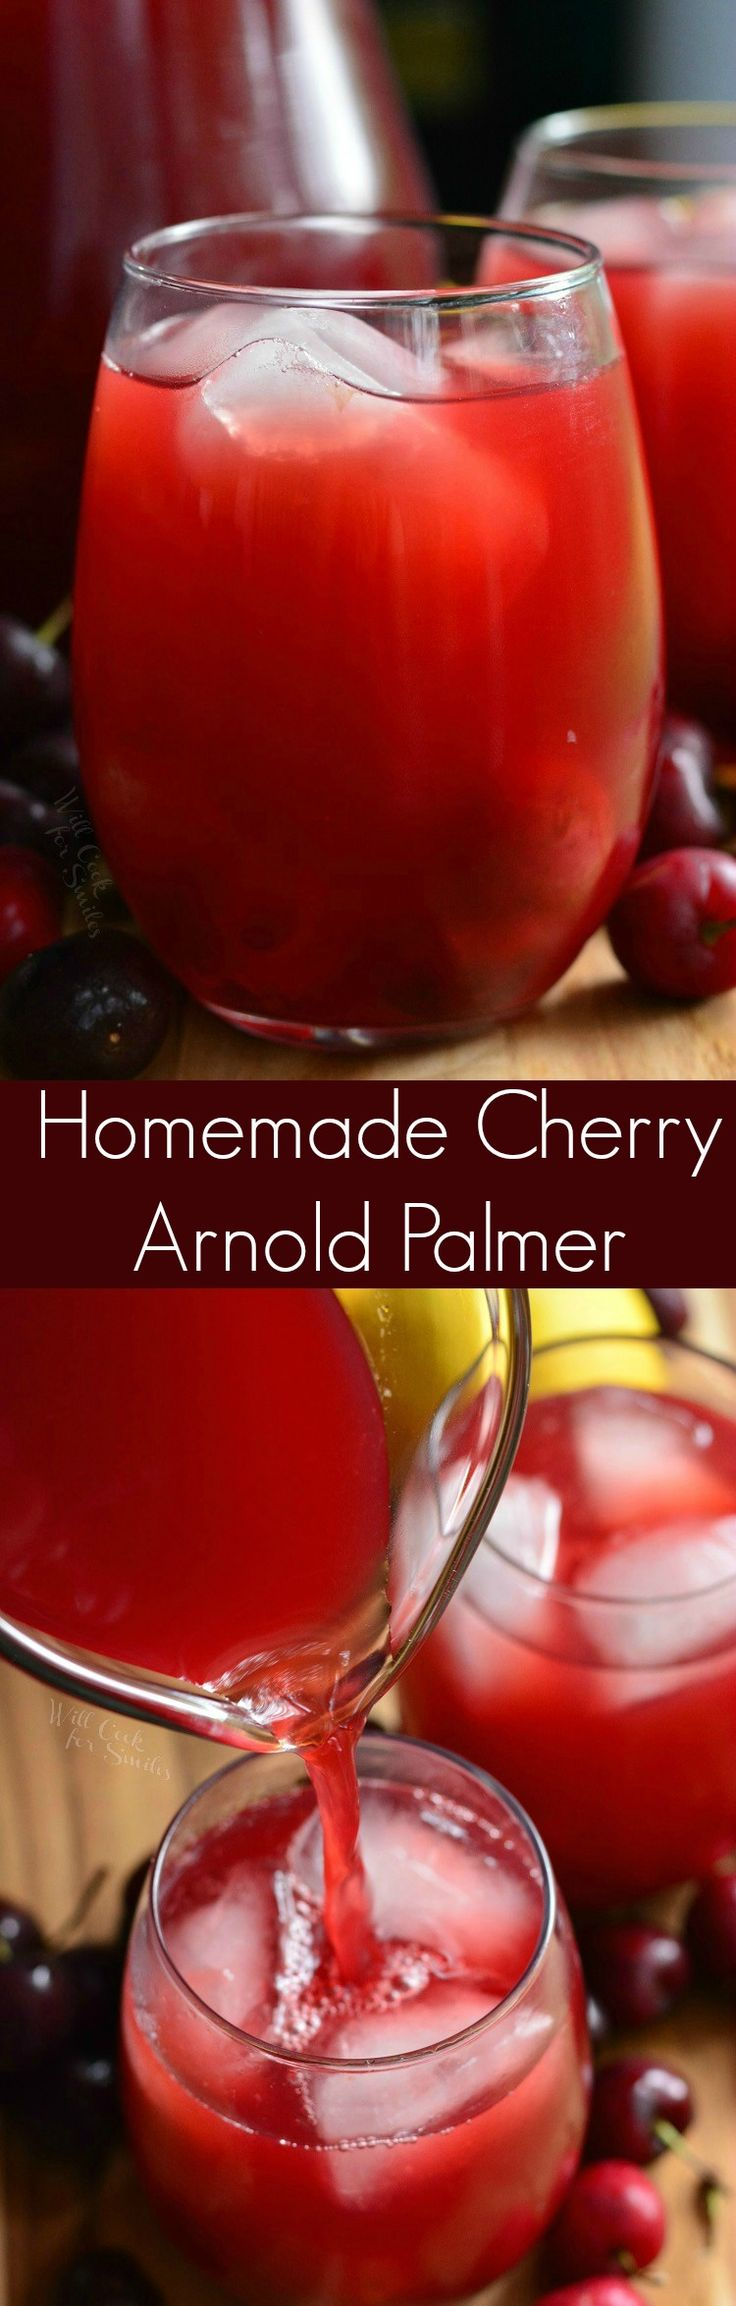 Homemade Cherry Arnold Palmer. This refreshing drink is a homemade Arnold Palmer, which is a mixture of iced tea and lemonade, that is flavored with fresh cherry compote.